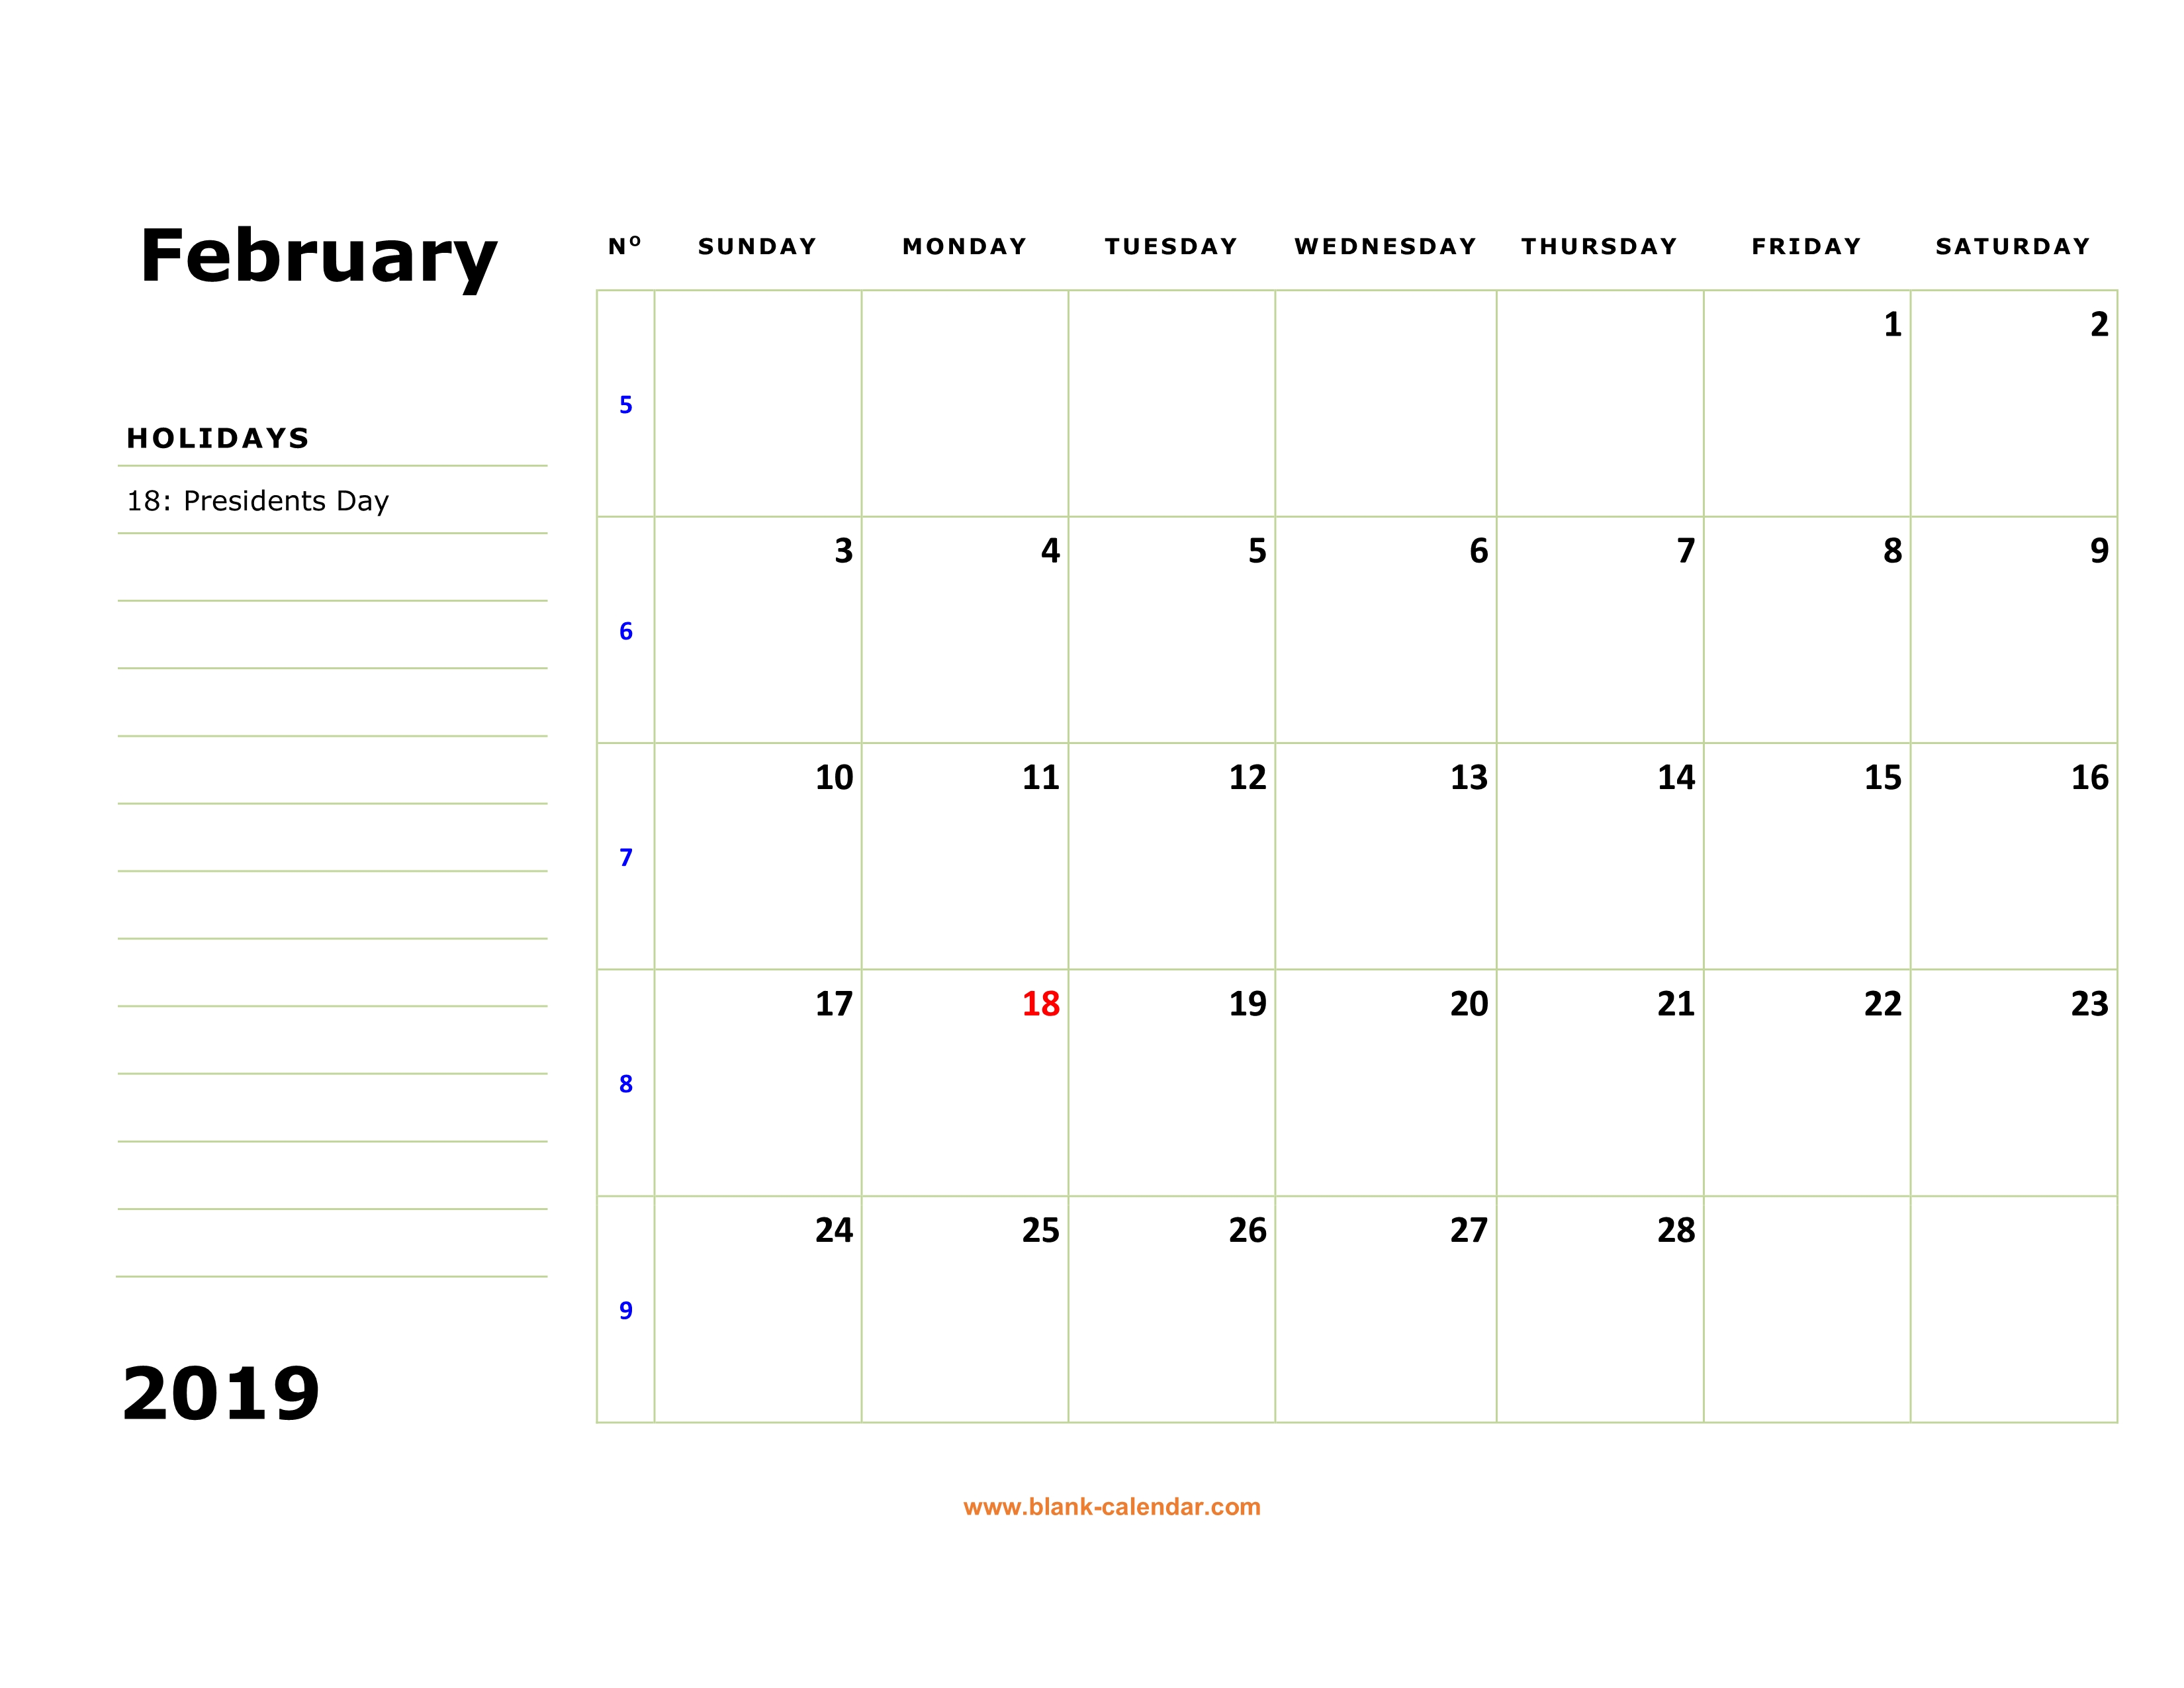 February 2019 Calendar with US Holidays